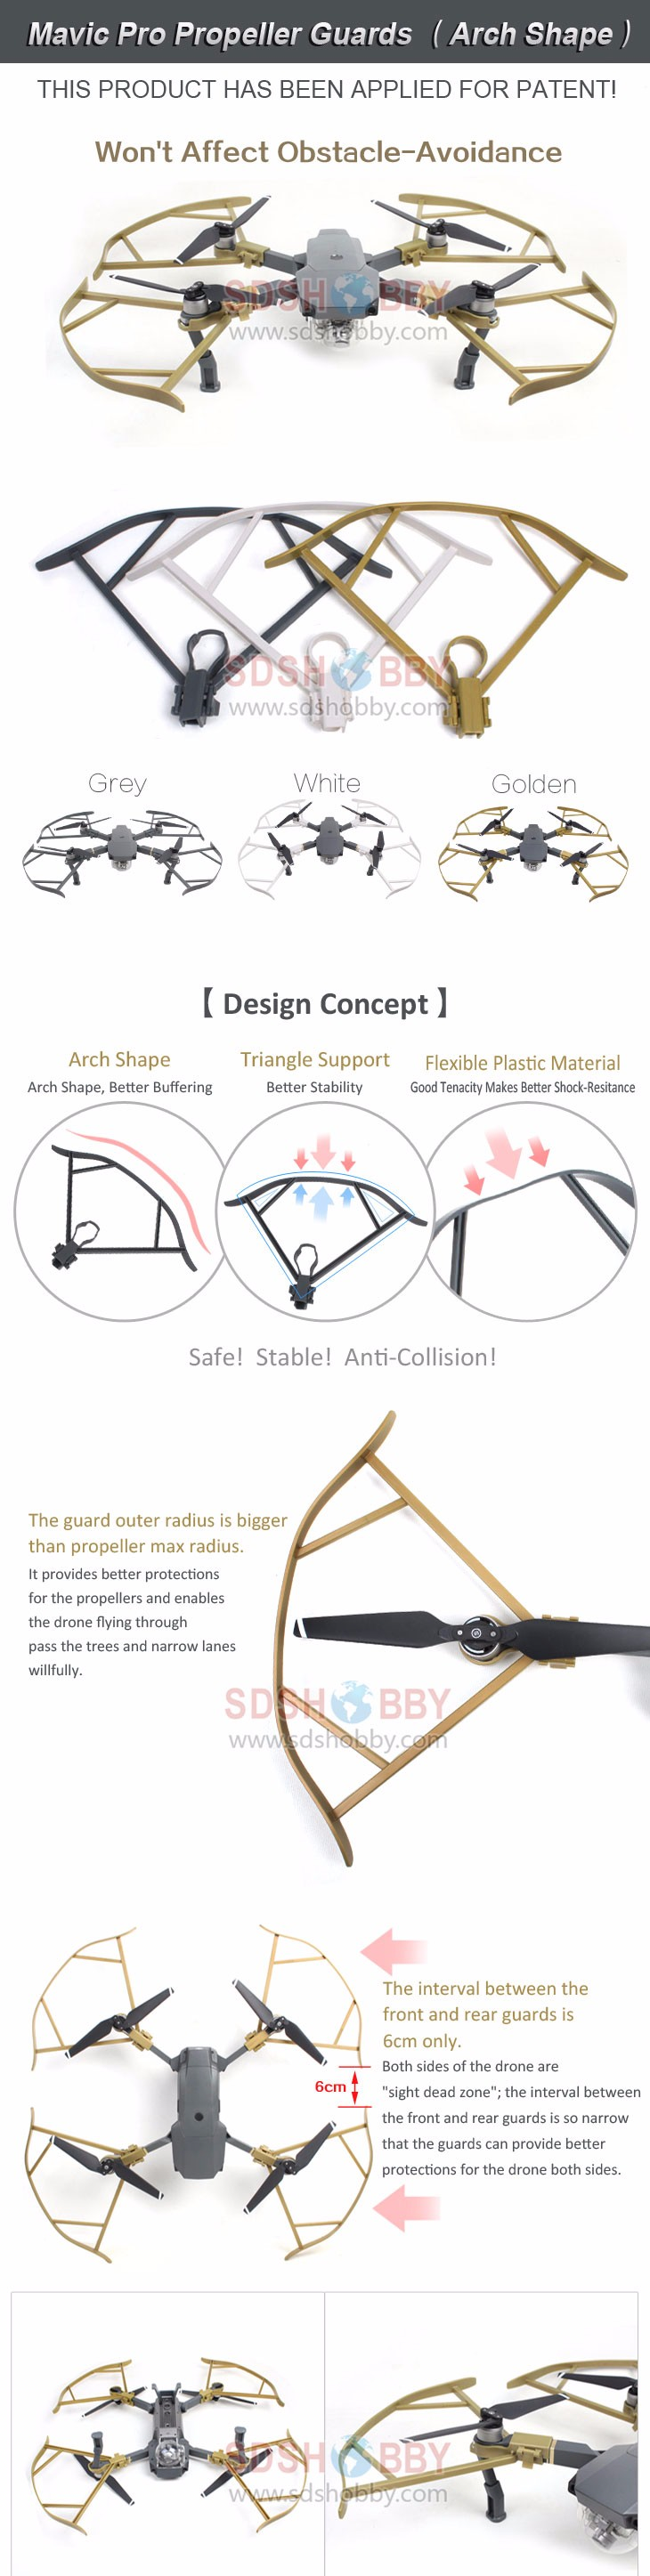 4pcs/set Not Affect Obstacle Avoidance Propeller Guard Blades Bumper Prop Protector Shielding Ring for DJI Mavic Pro Drone